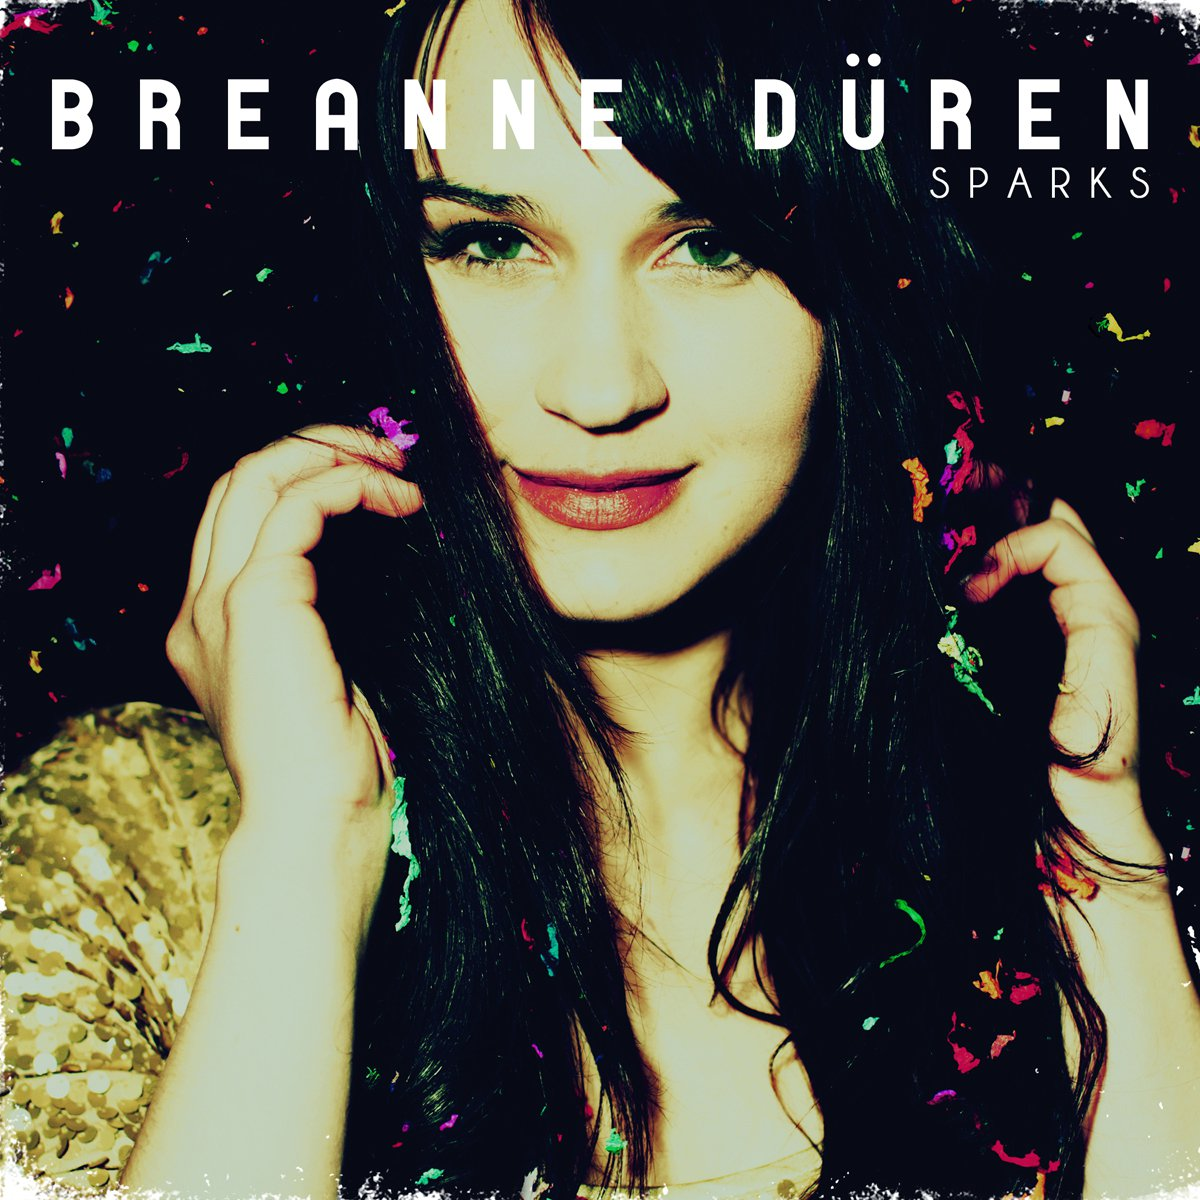 """Breanne D�ren"" font, please. :)"